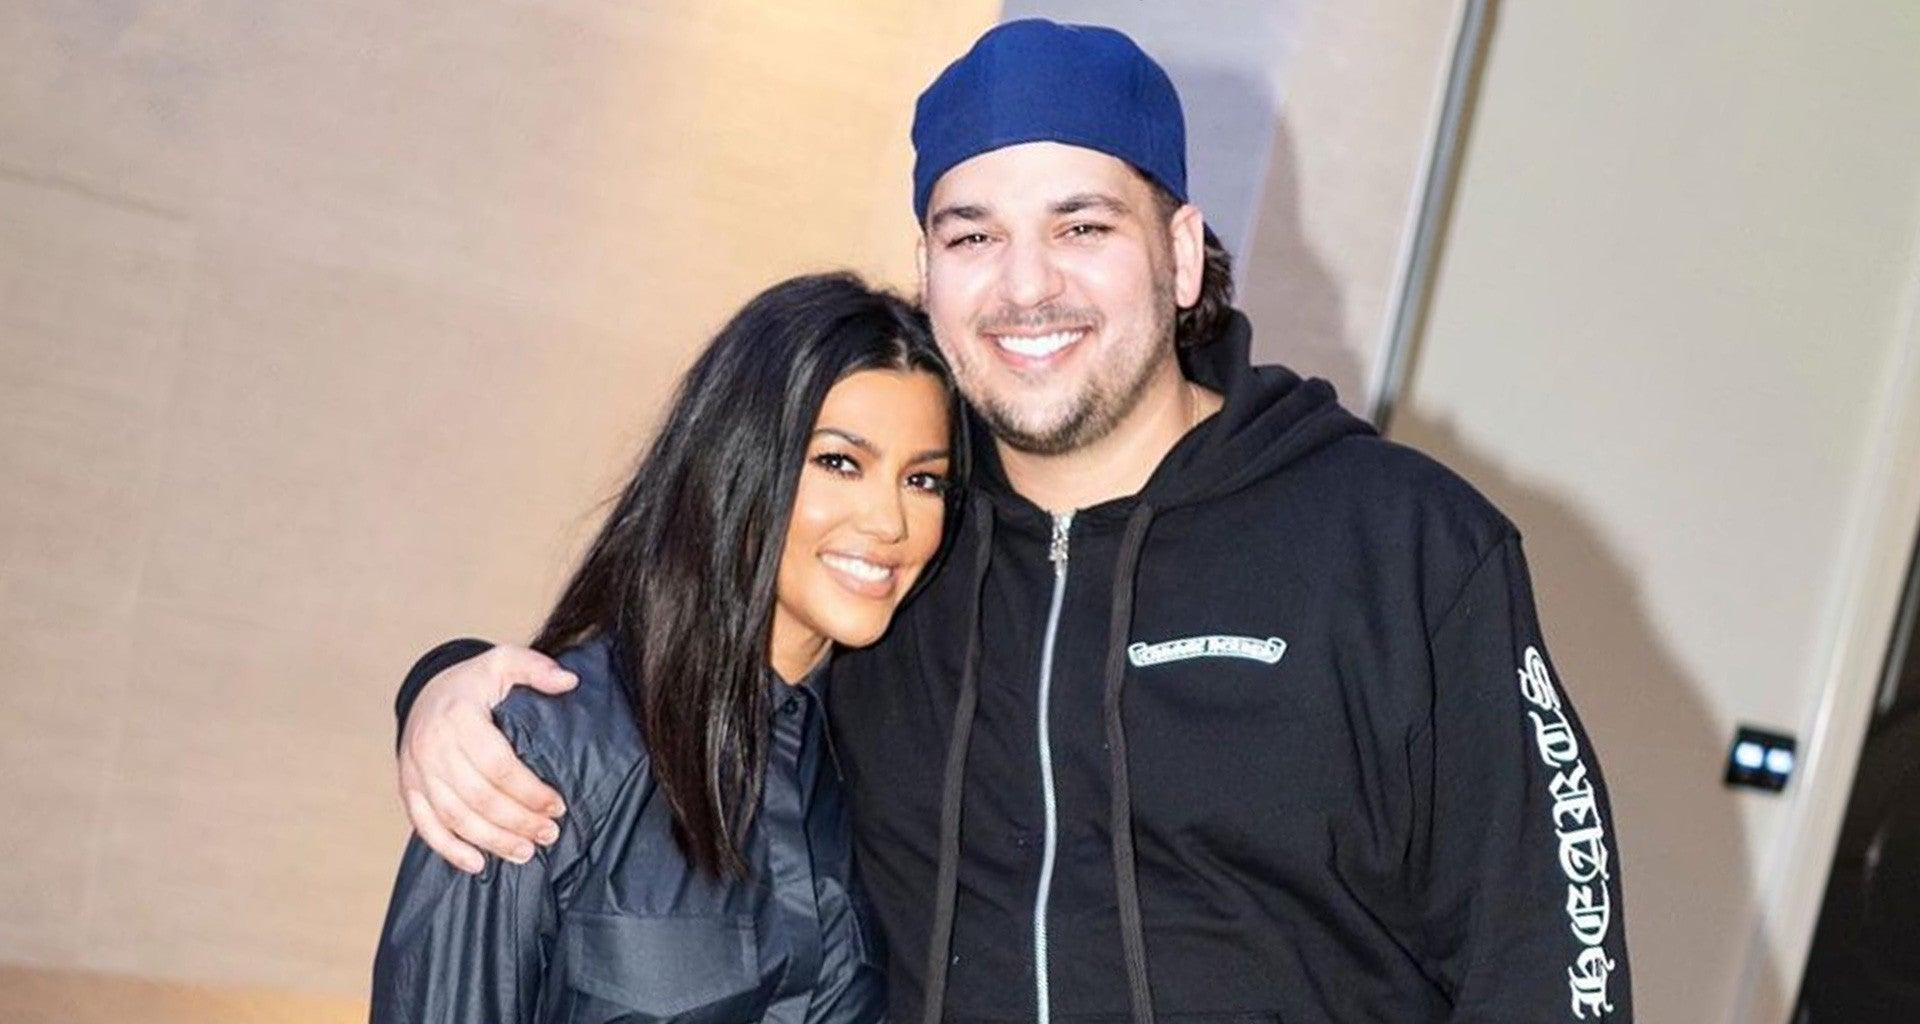 KUWK: Rob Kardashian Not Done Transforming His Body After Weight Loss - Wants To Get Toned!